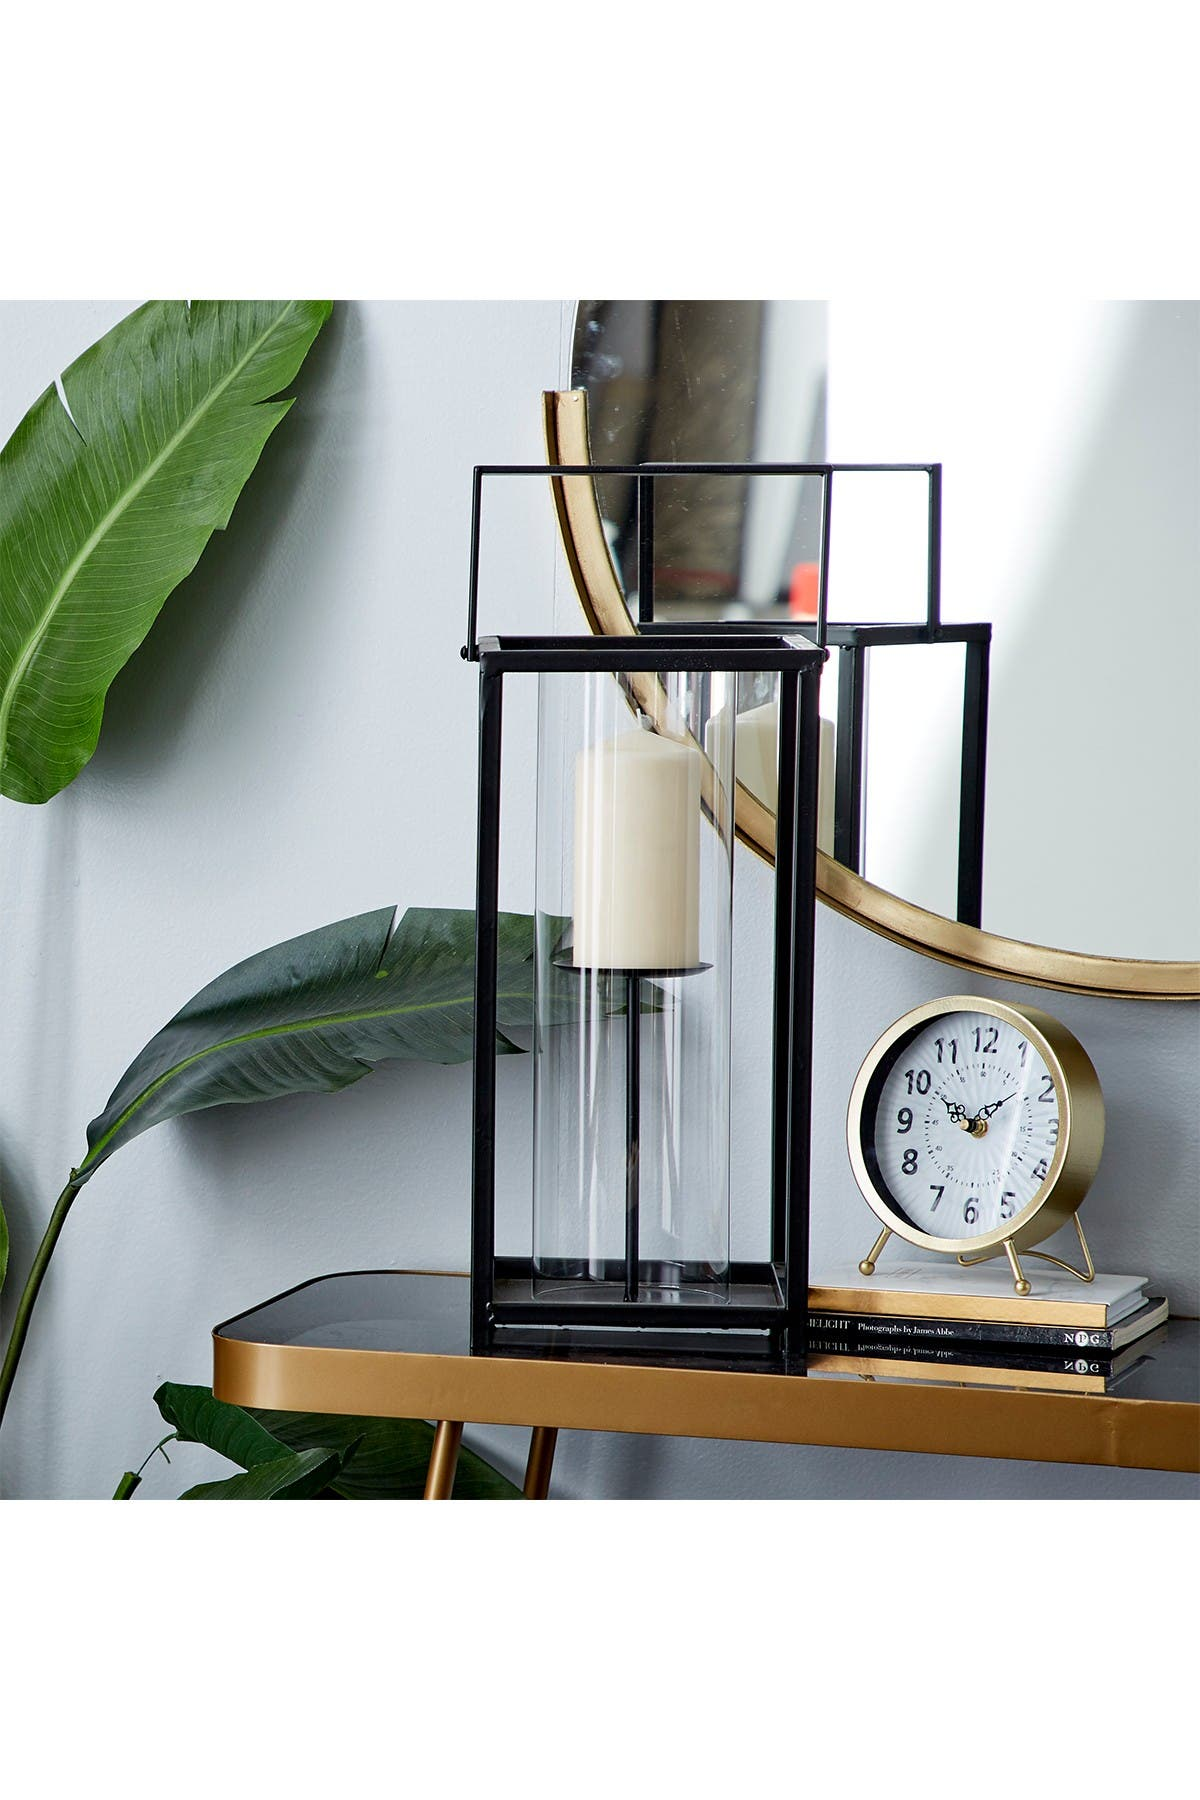 Willow Row Large Rectangle Contemporary Iron And Glass Candle Holder In Black Finish With Metal Handle 8 X20 Nordstrom Rack